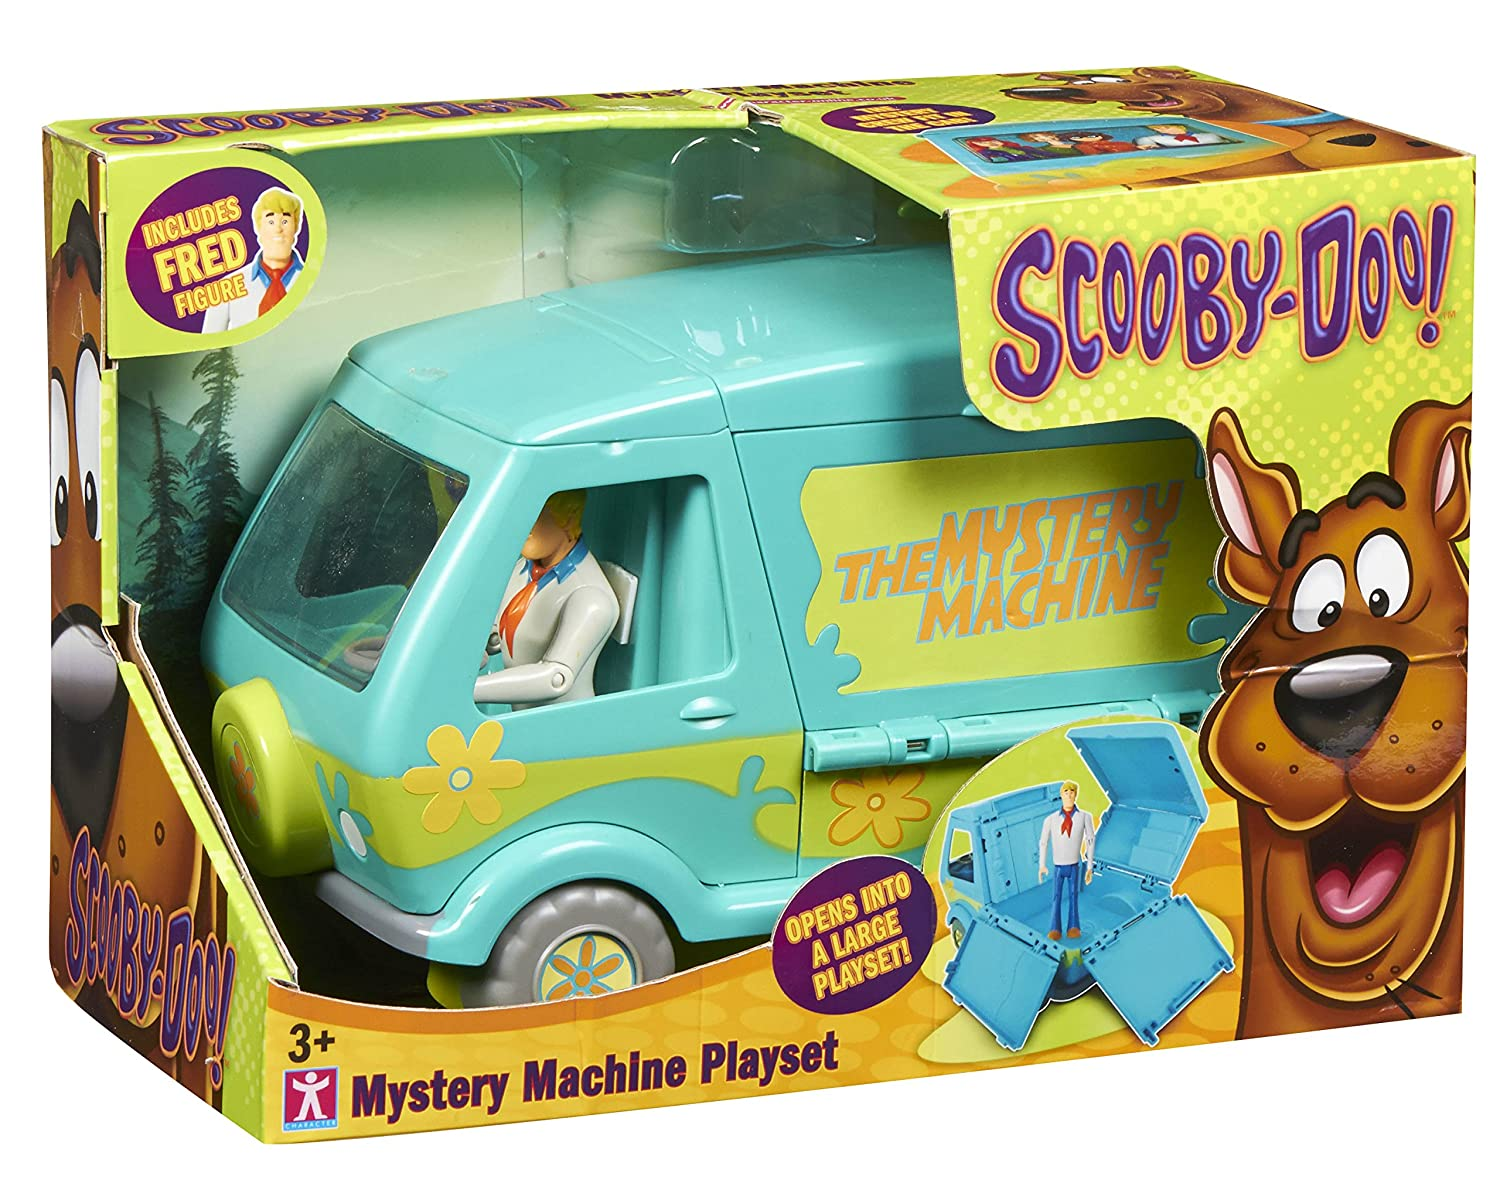 Amazon.com: Scooby Doo Mystery Machine Playset With Fred Figure by ...